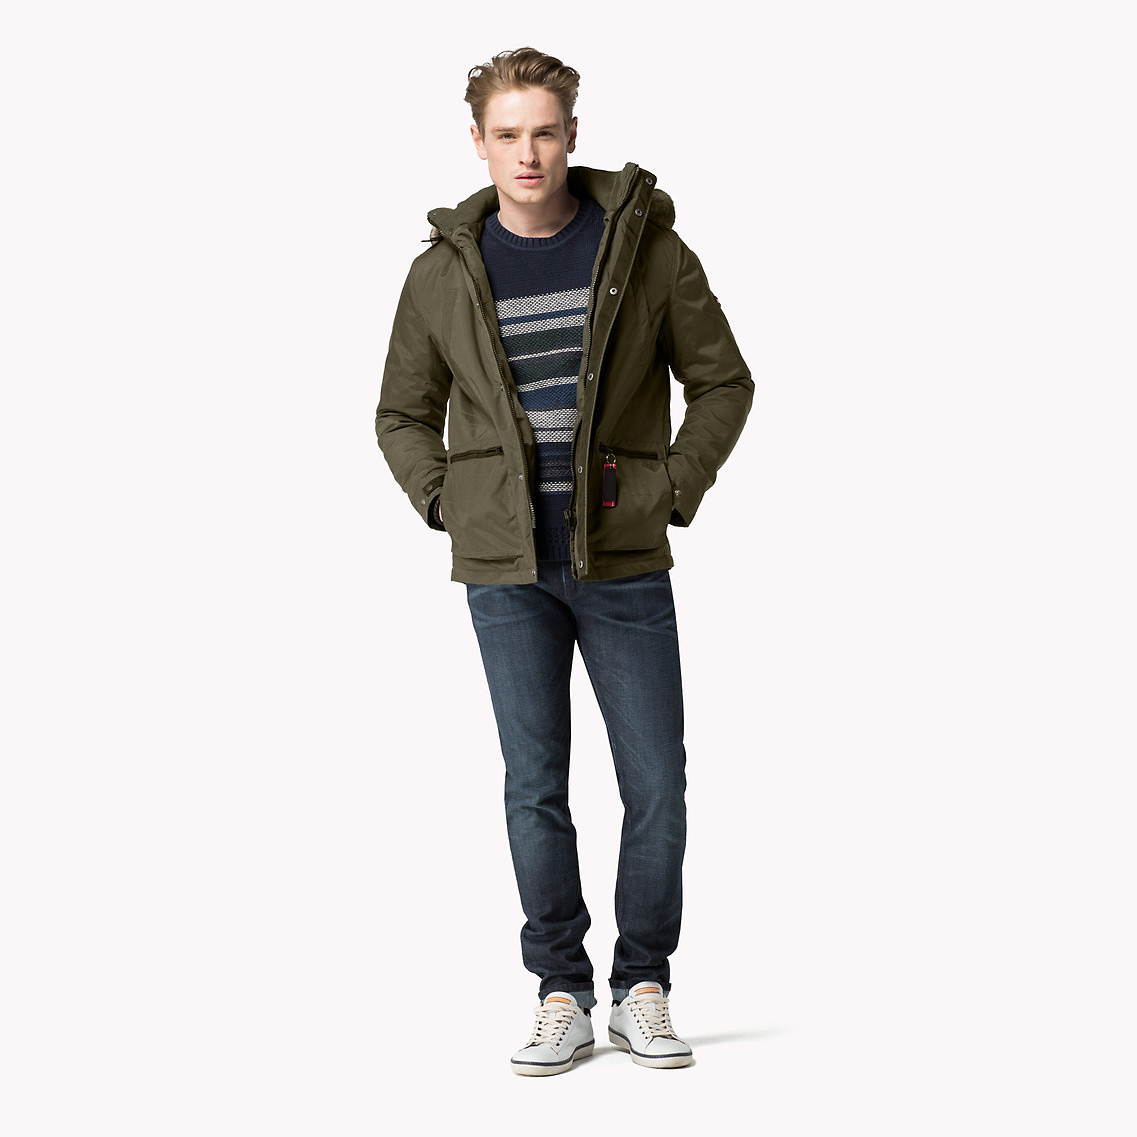 tommy hilfiger hooded parka in green for men olive night pt lyst. Black Bedroom Furniture Sets. Home Design Ideas